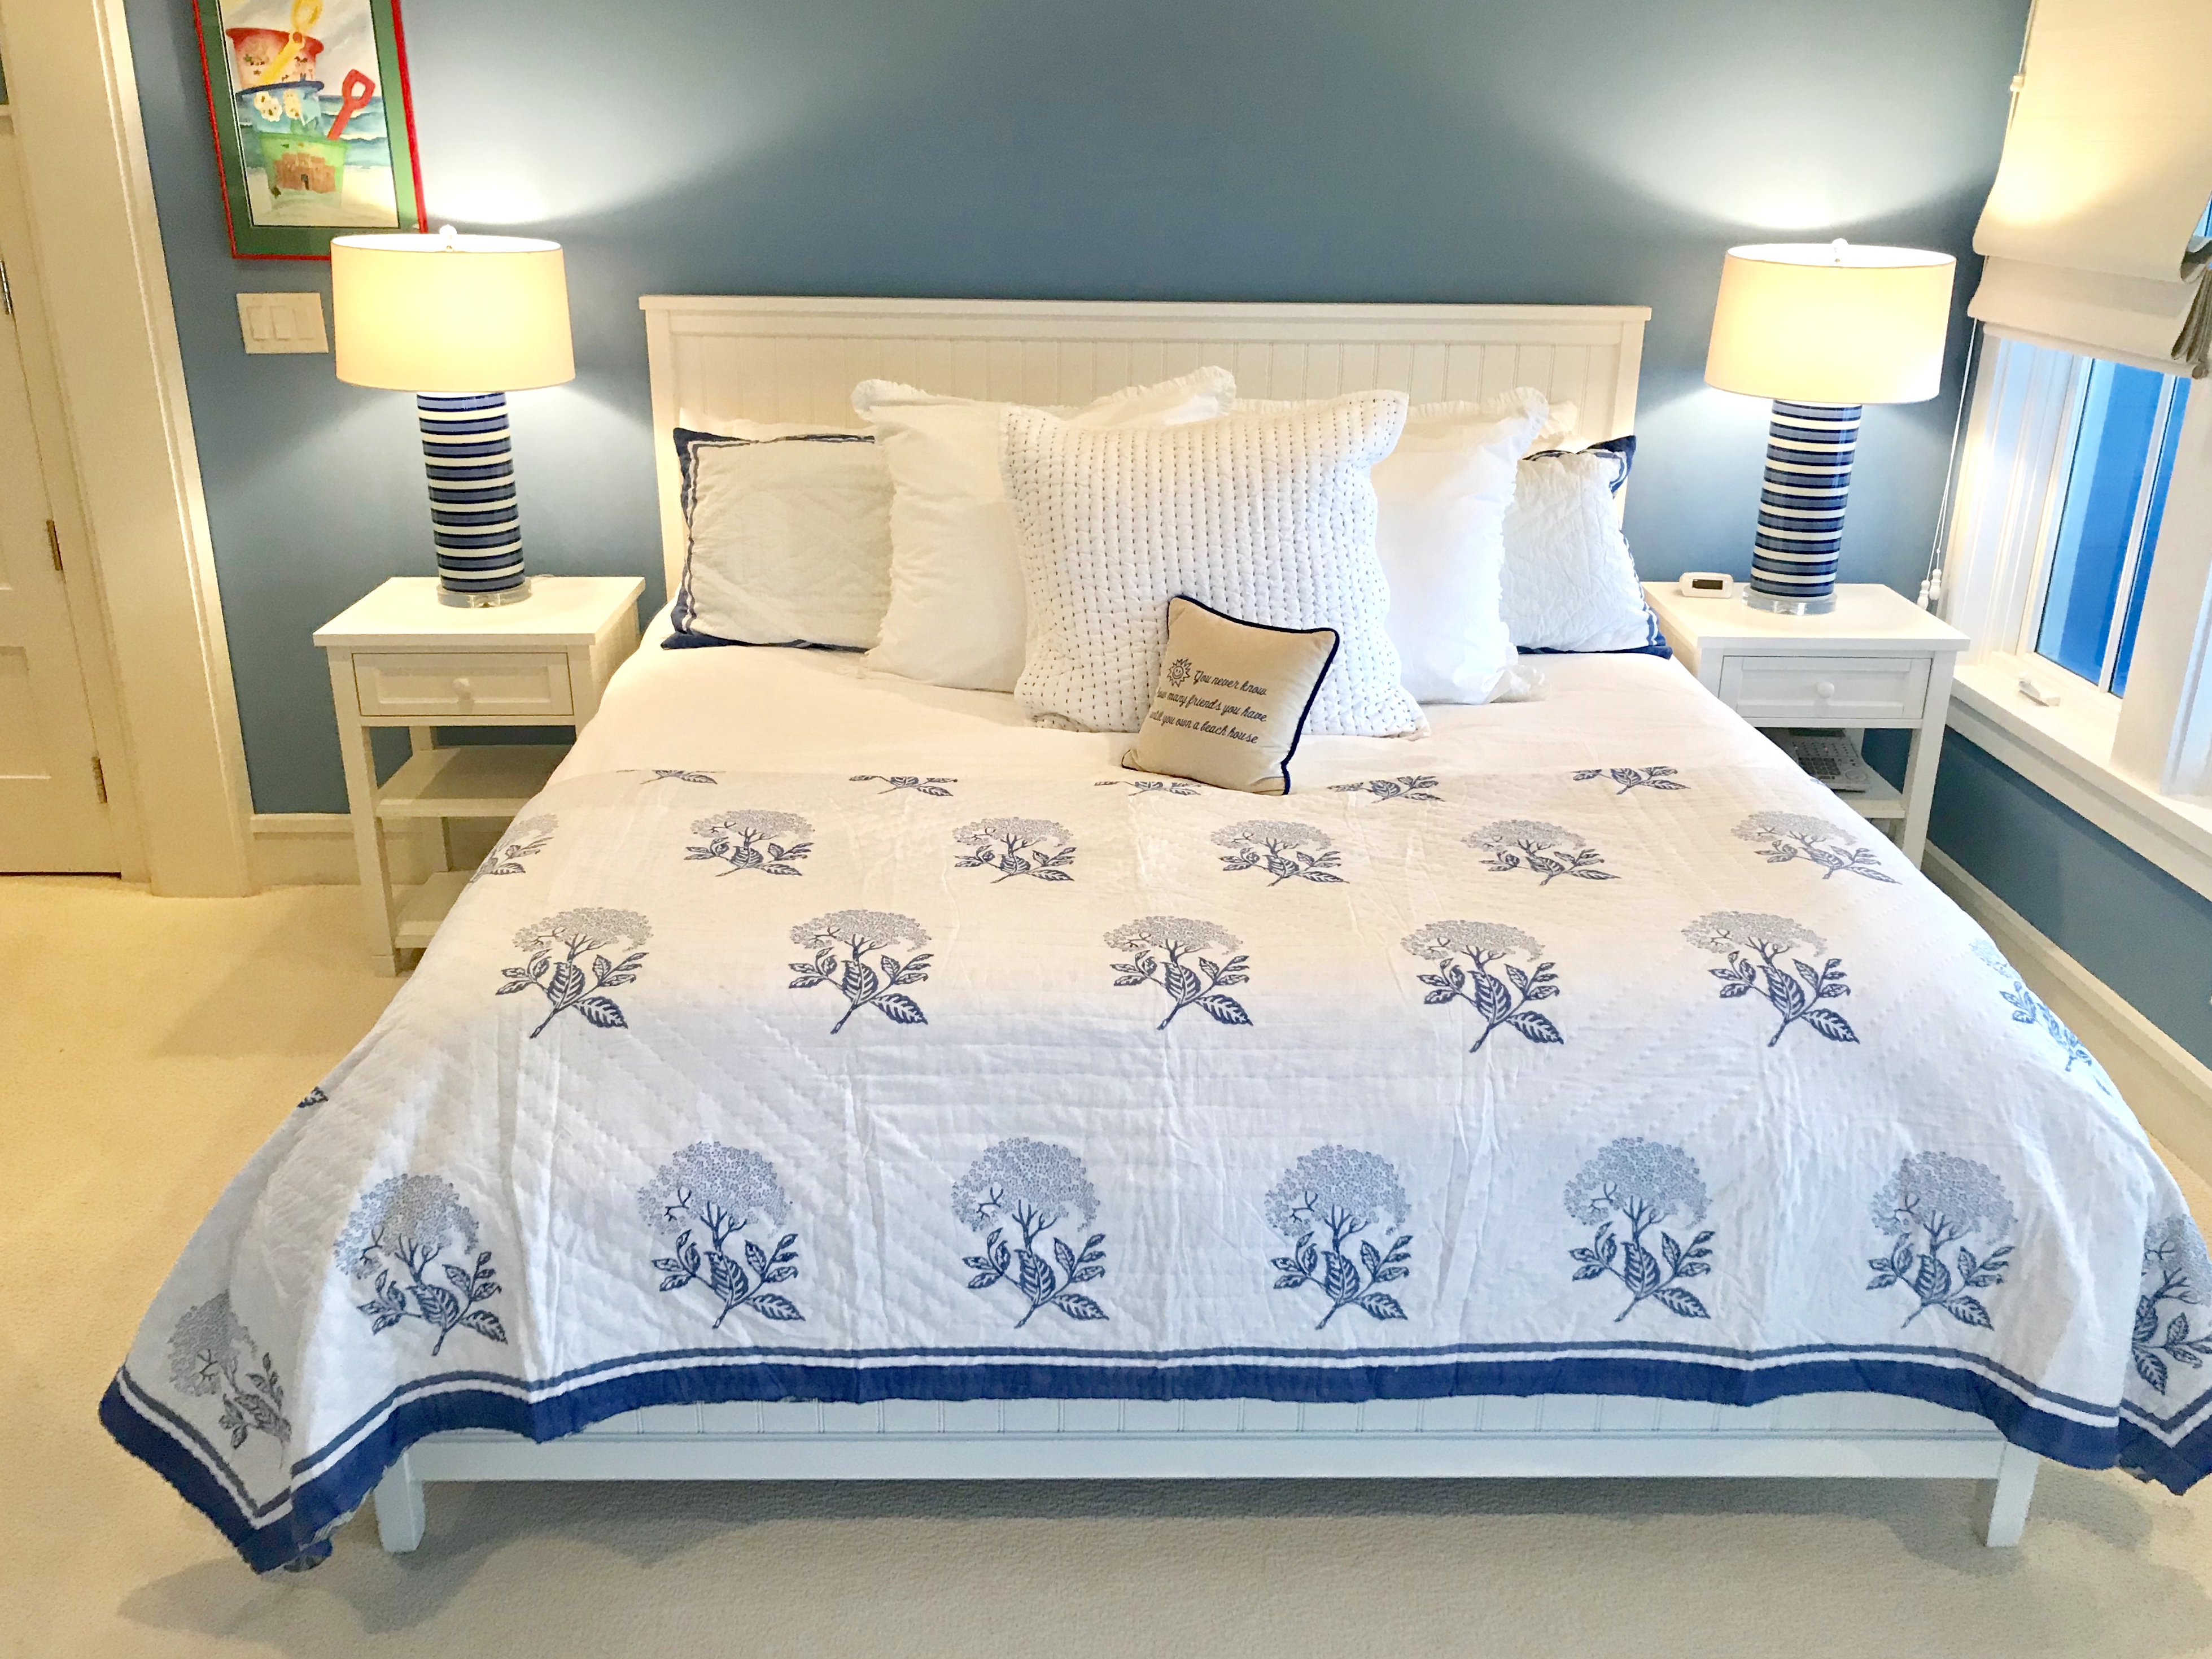 Secondary master bedroom with a King sized bed